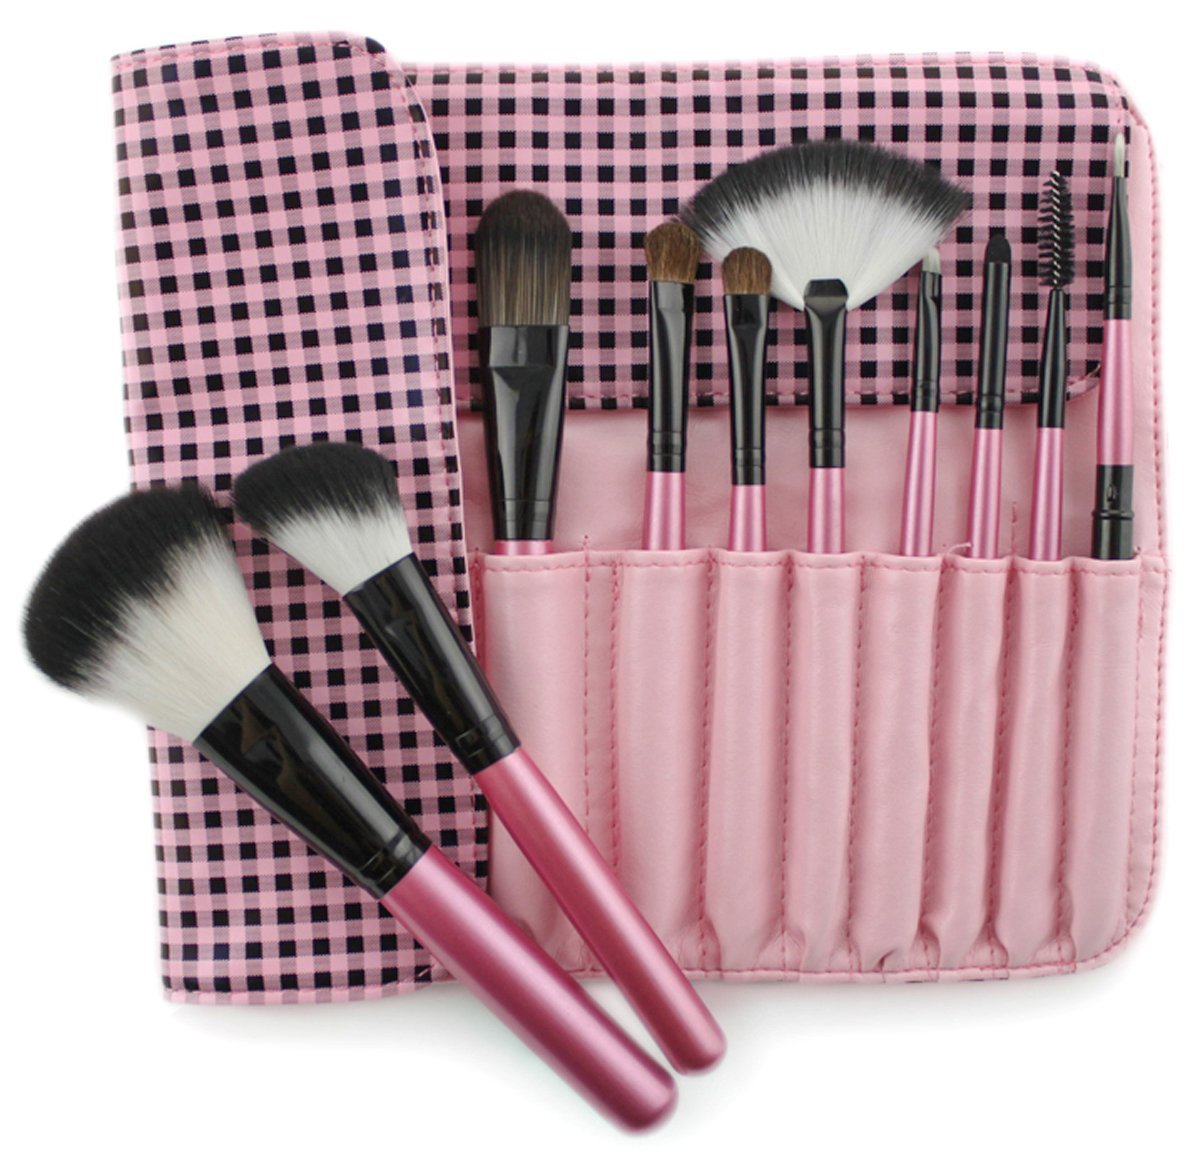 Frola Cosmetics Pro 10 Pcs Goat Hair Makeup Brush Brushes Set Kit with Black & Pink Plaid Case Bag